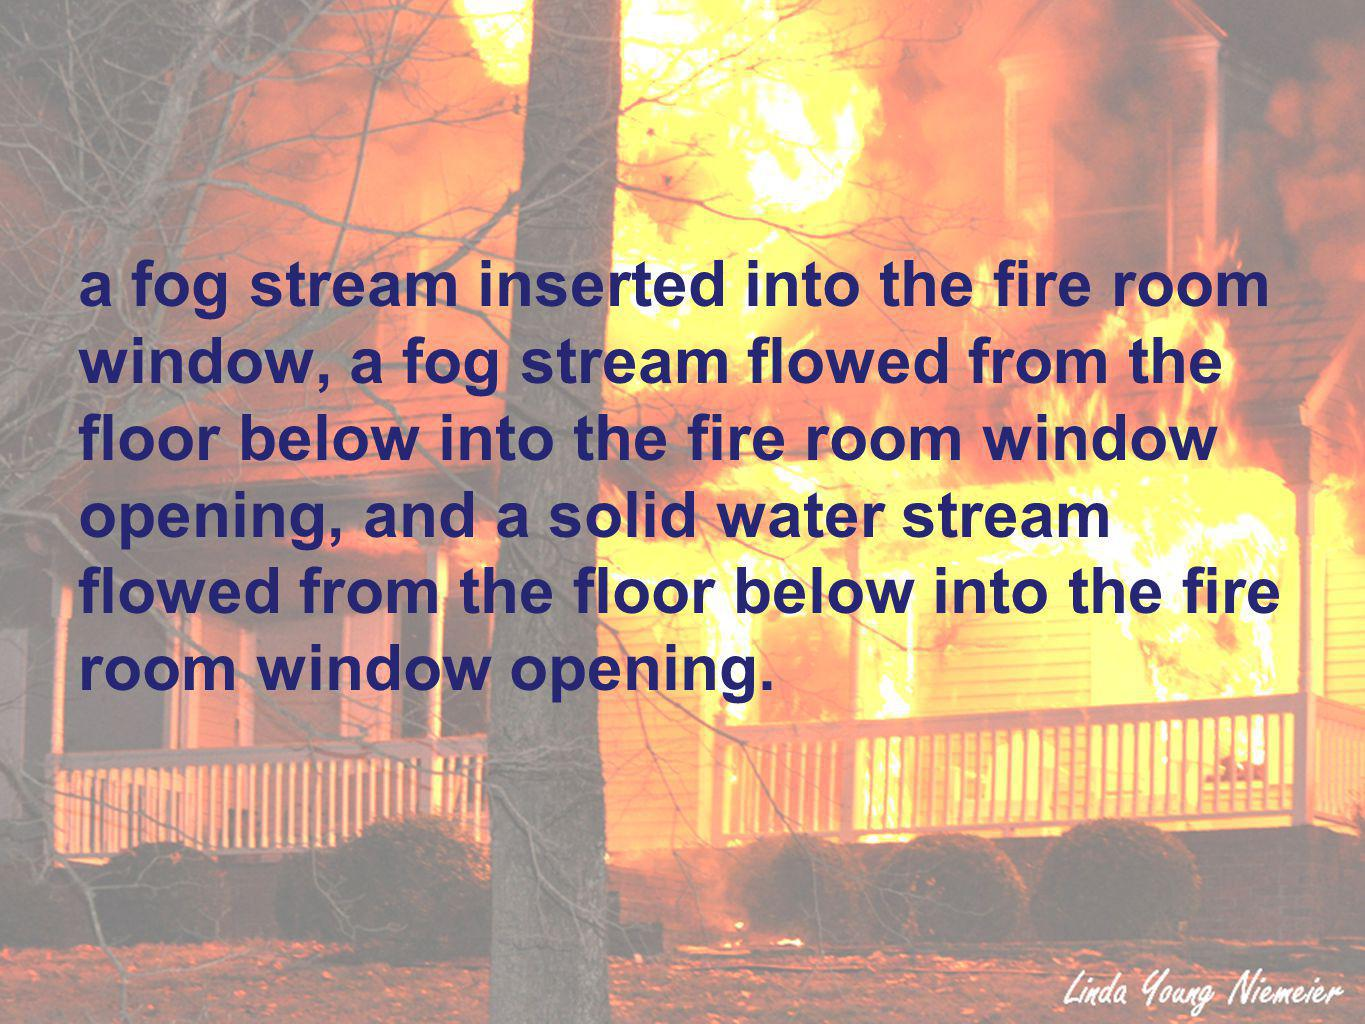 a fog stream inserted into the fire room window, a fog stream flowed from the floor below into the fire room window opening, and a solid water stream